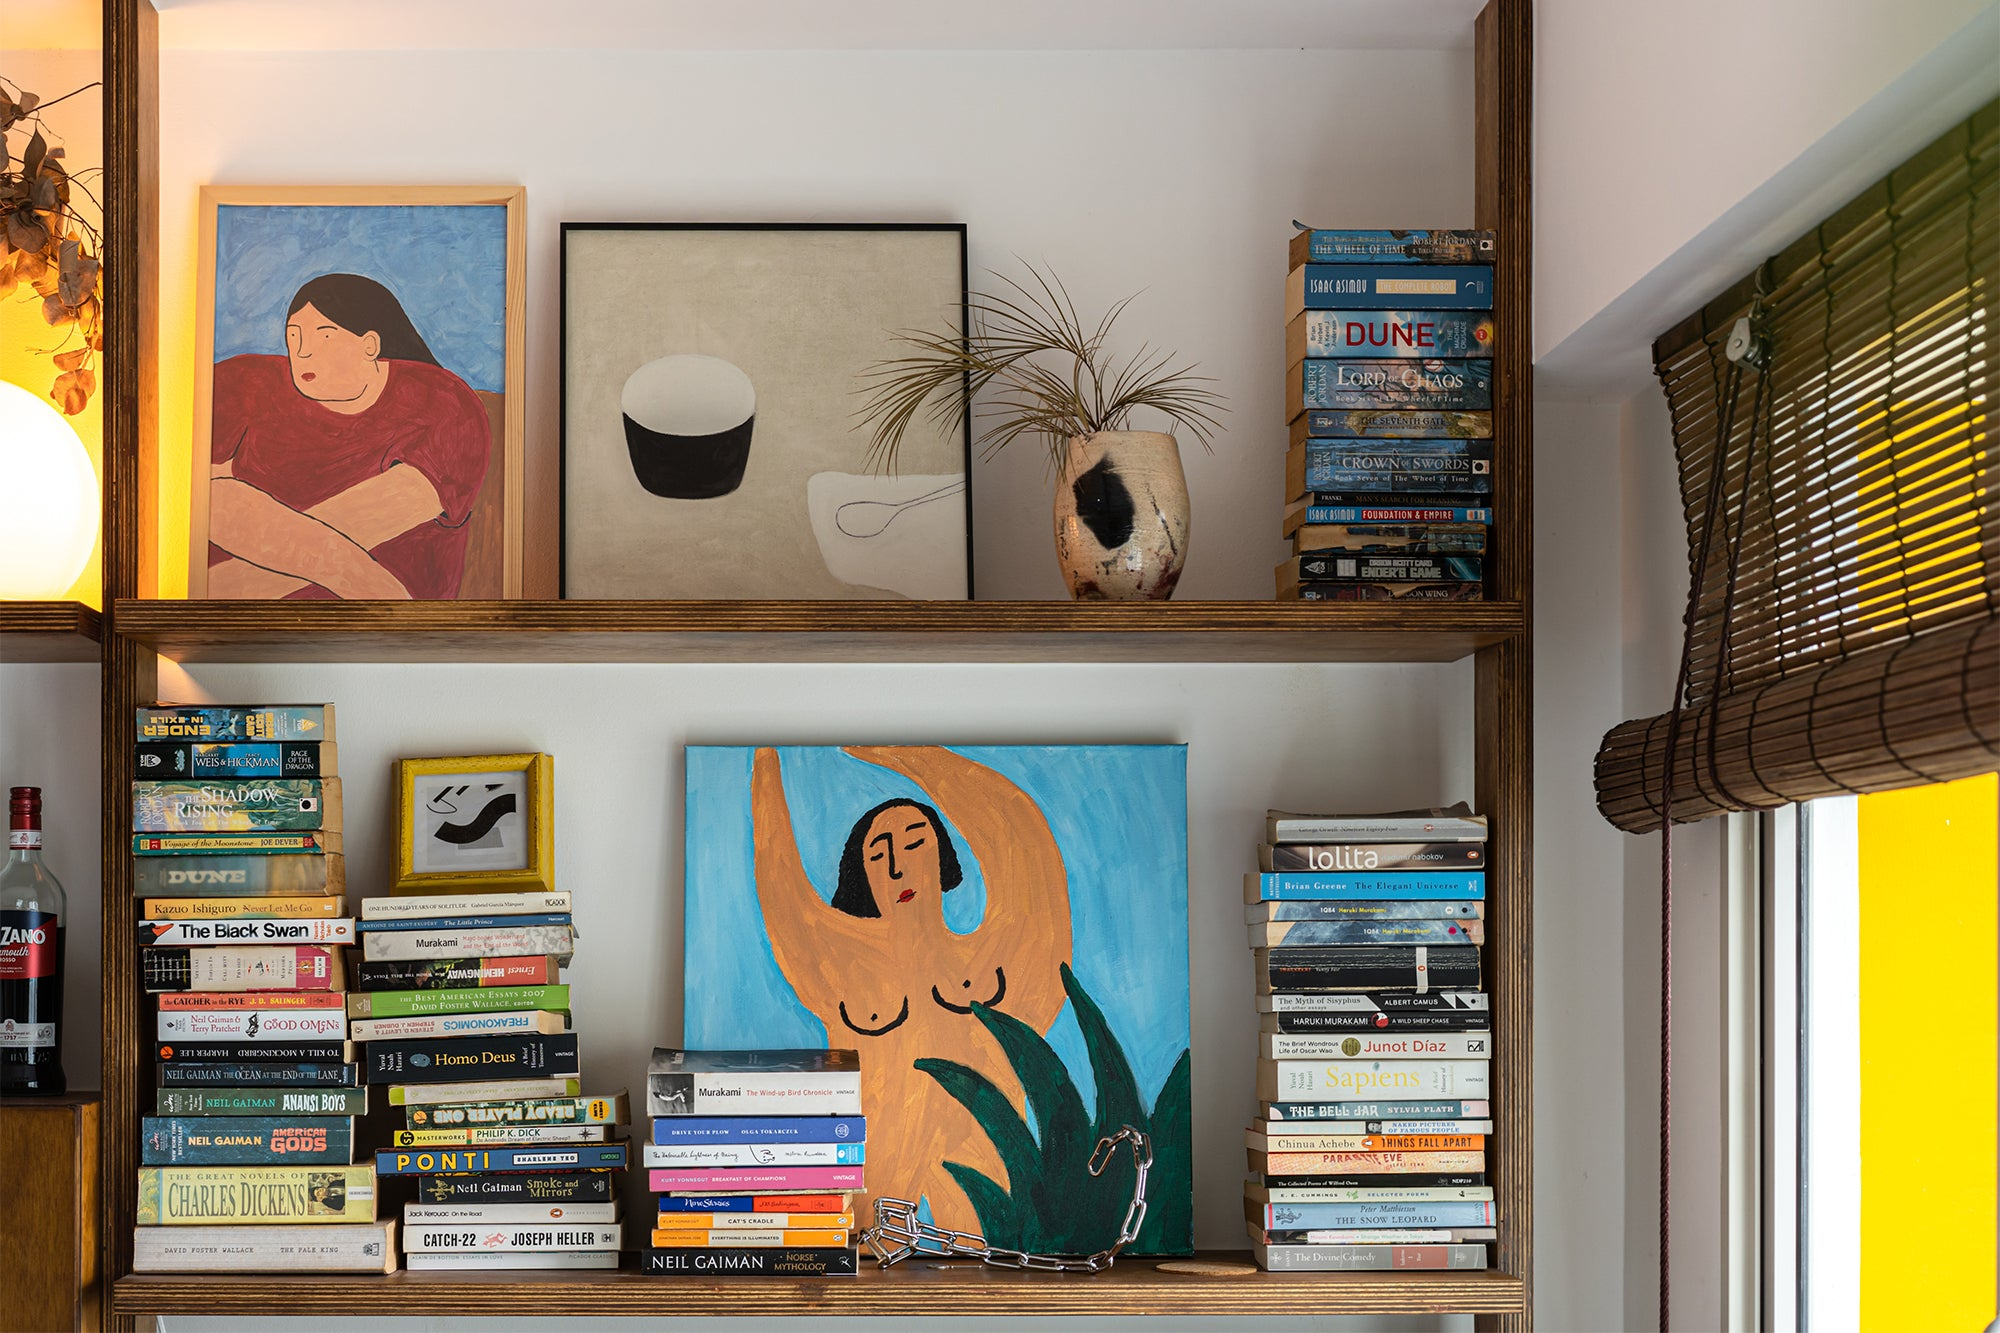 custom wooden shelf with books and paintings